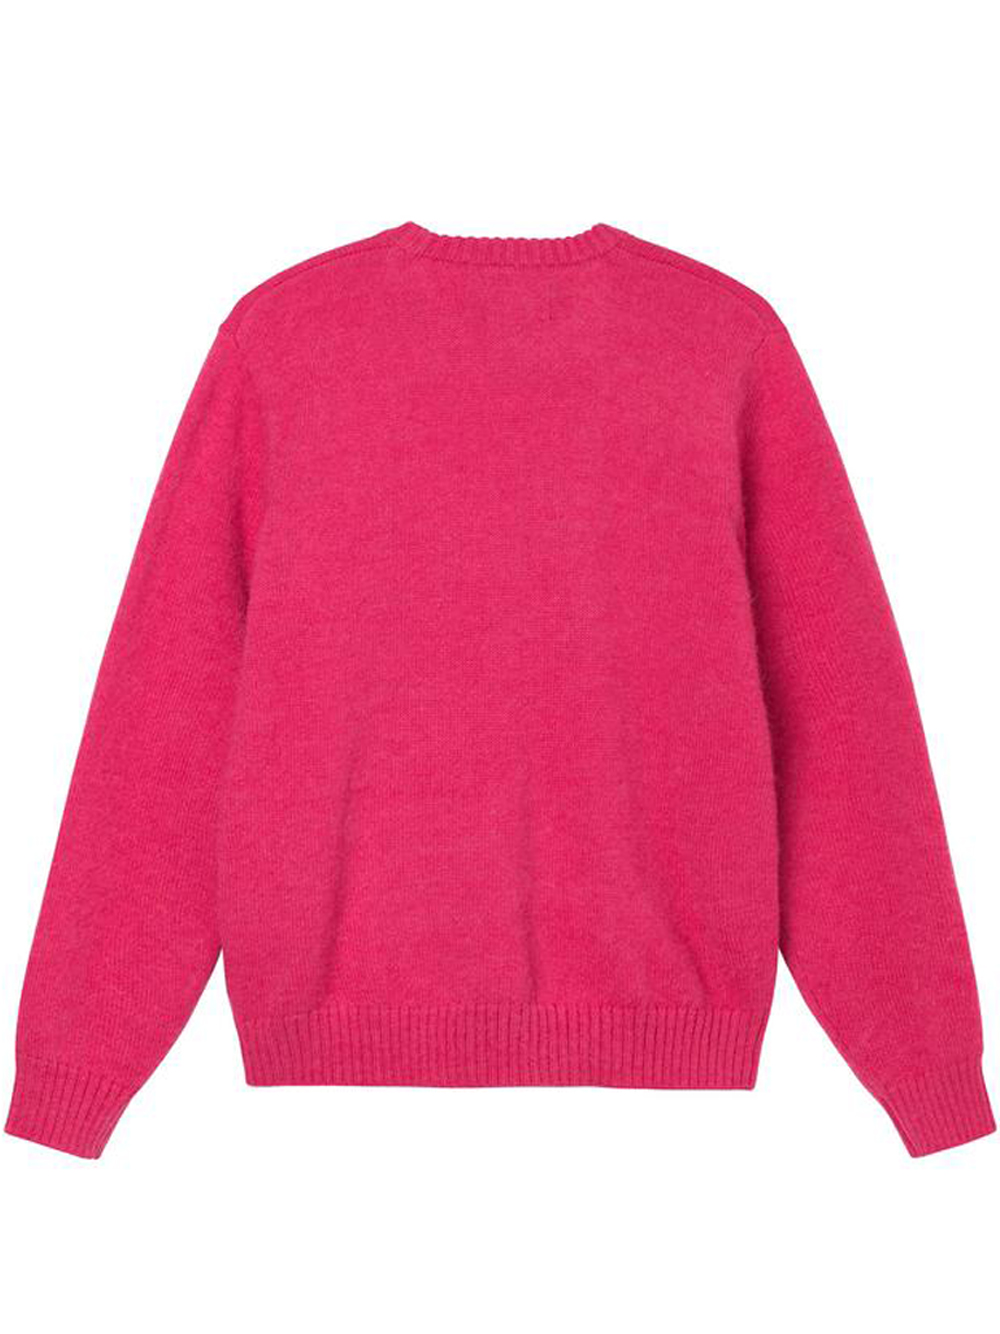 double cable sweater man pink STUSSY   Sweaters   117096PINK